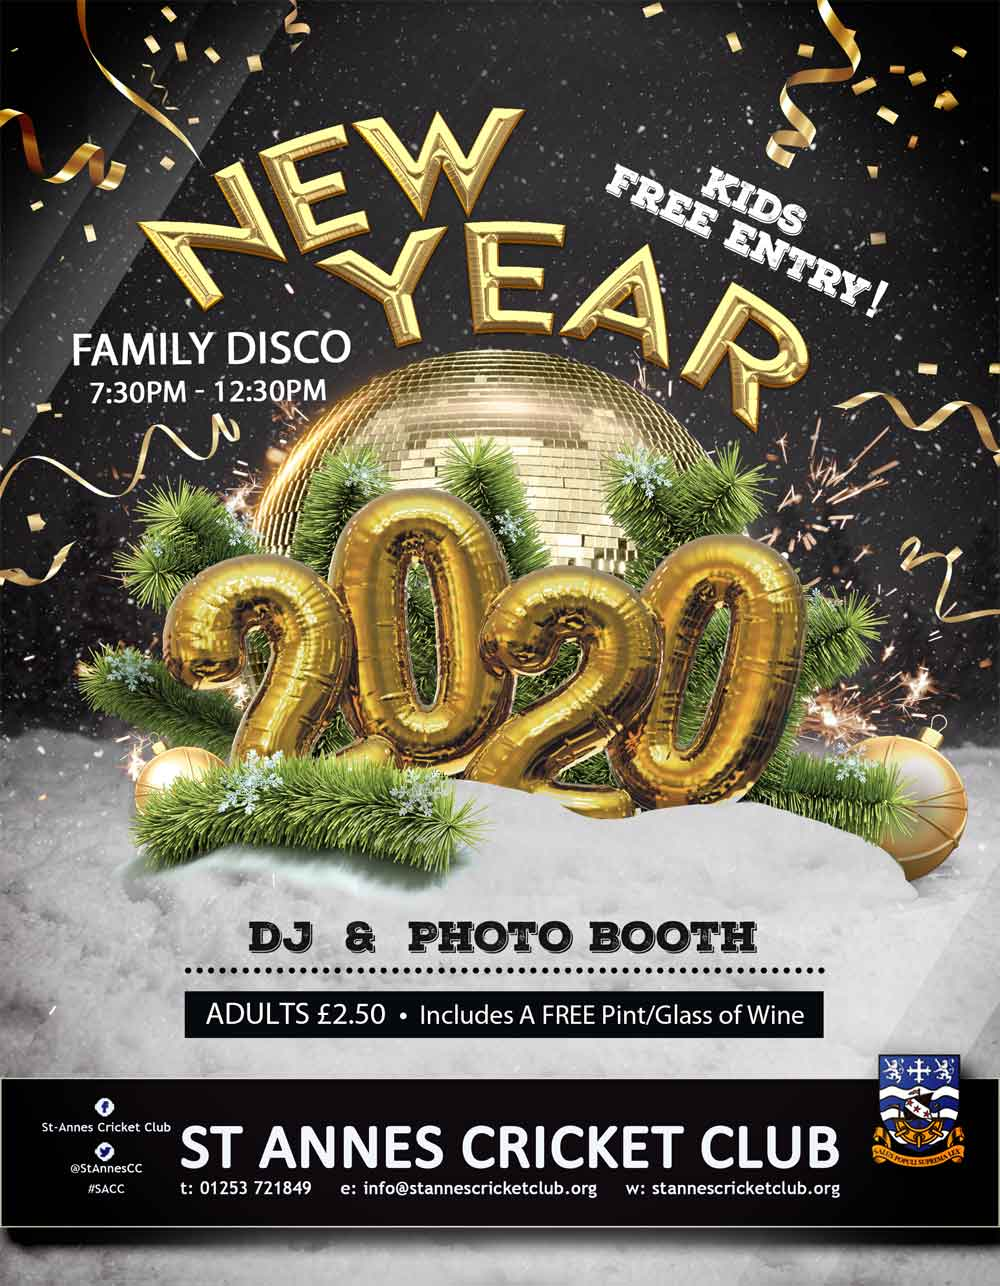 Celebrate New Years Eve together at our family disco & capture the memories in our photo booth!